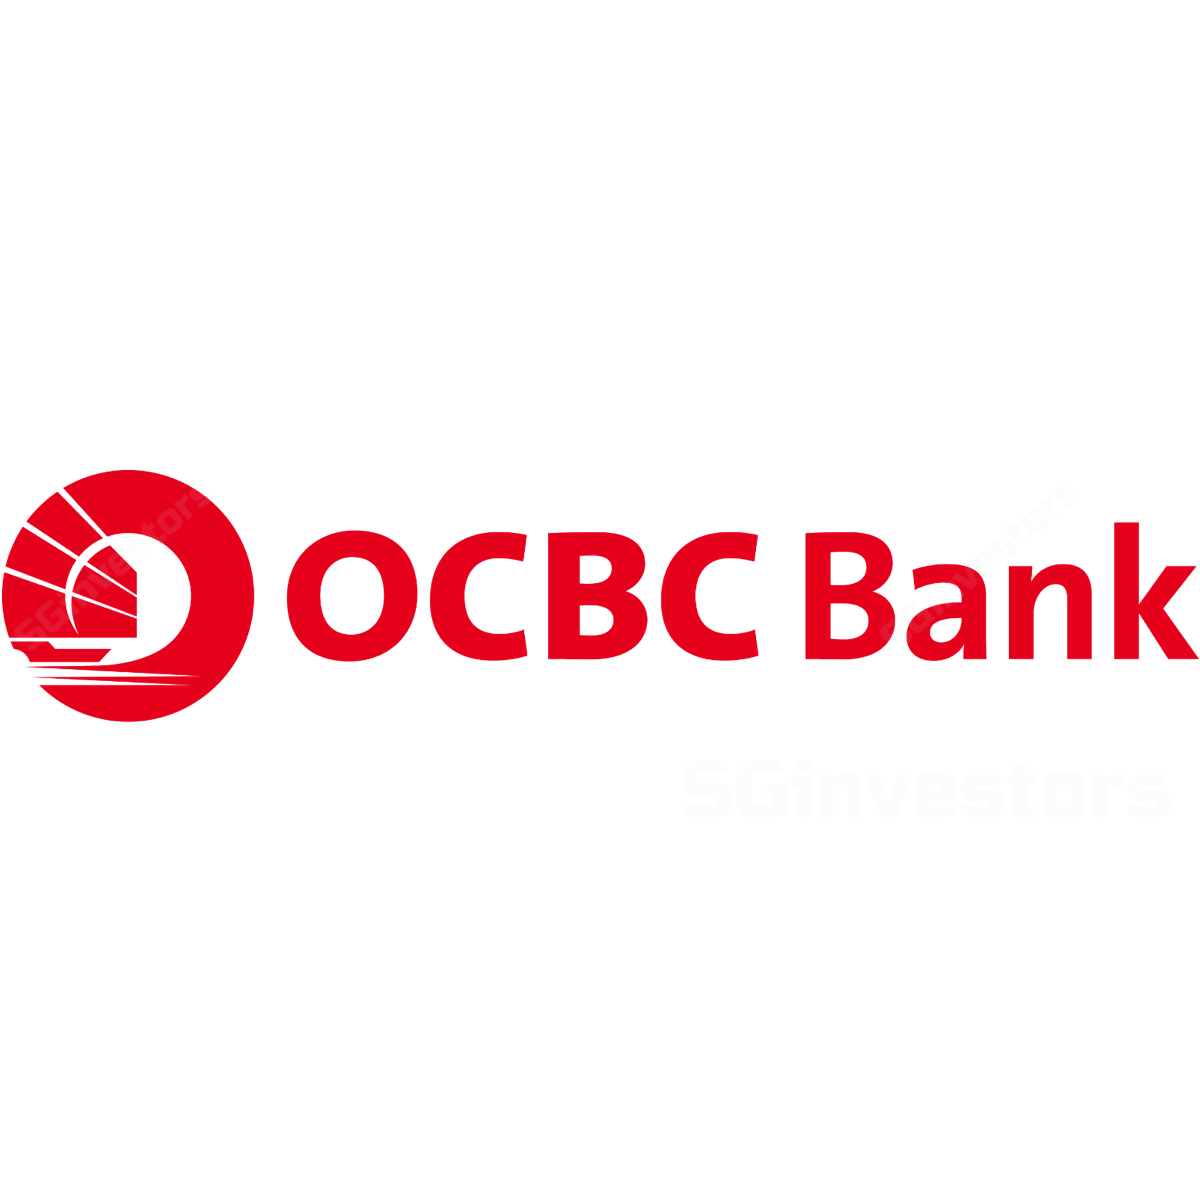 OCBC Bank - DBS Vickers 2018-04-26: Staying Above The Rest